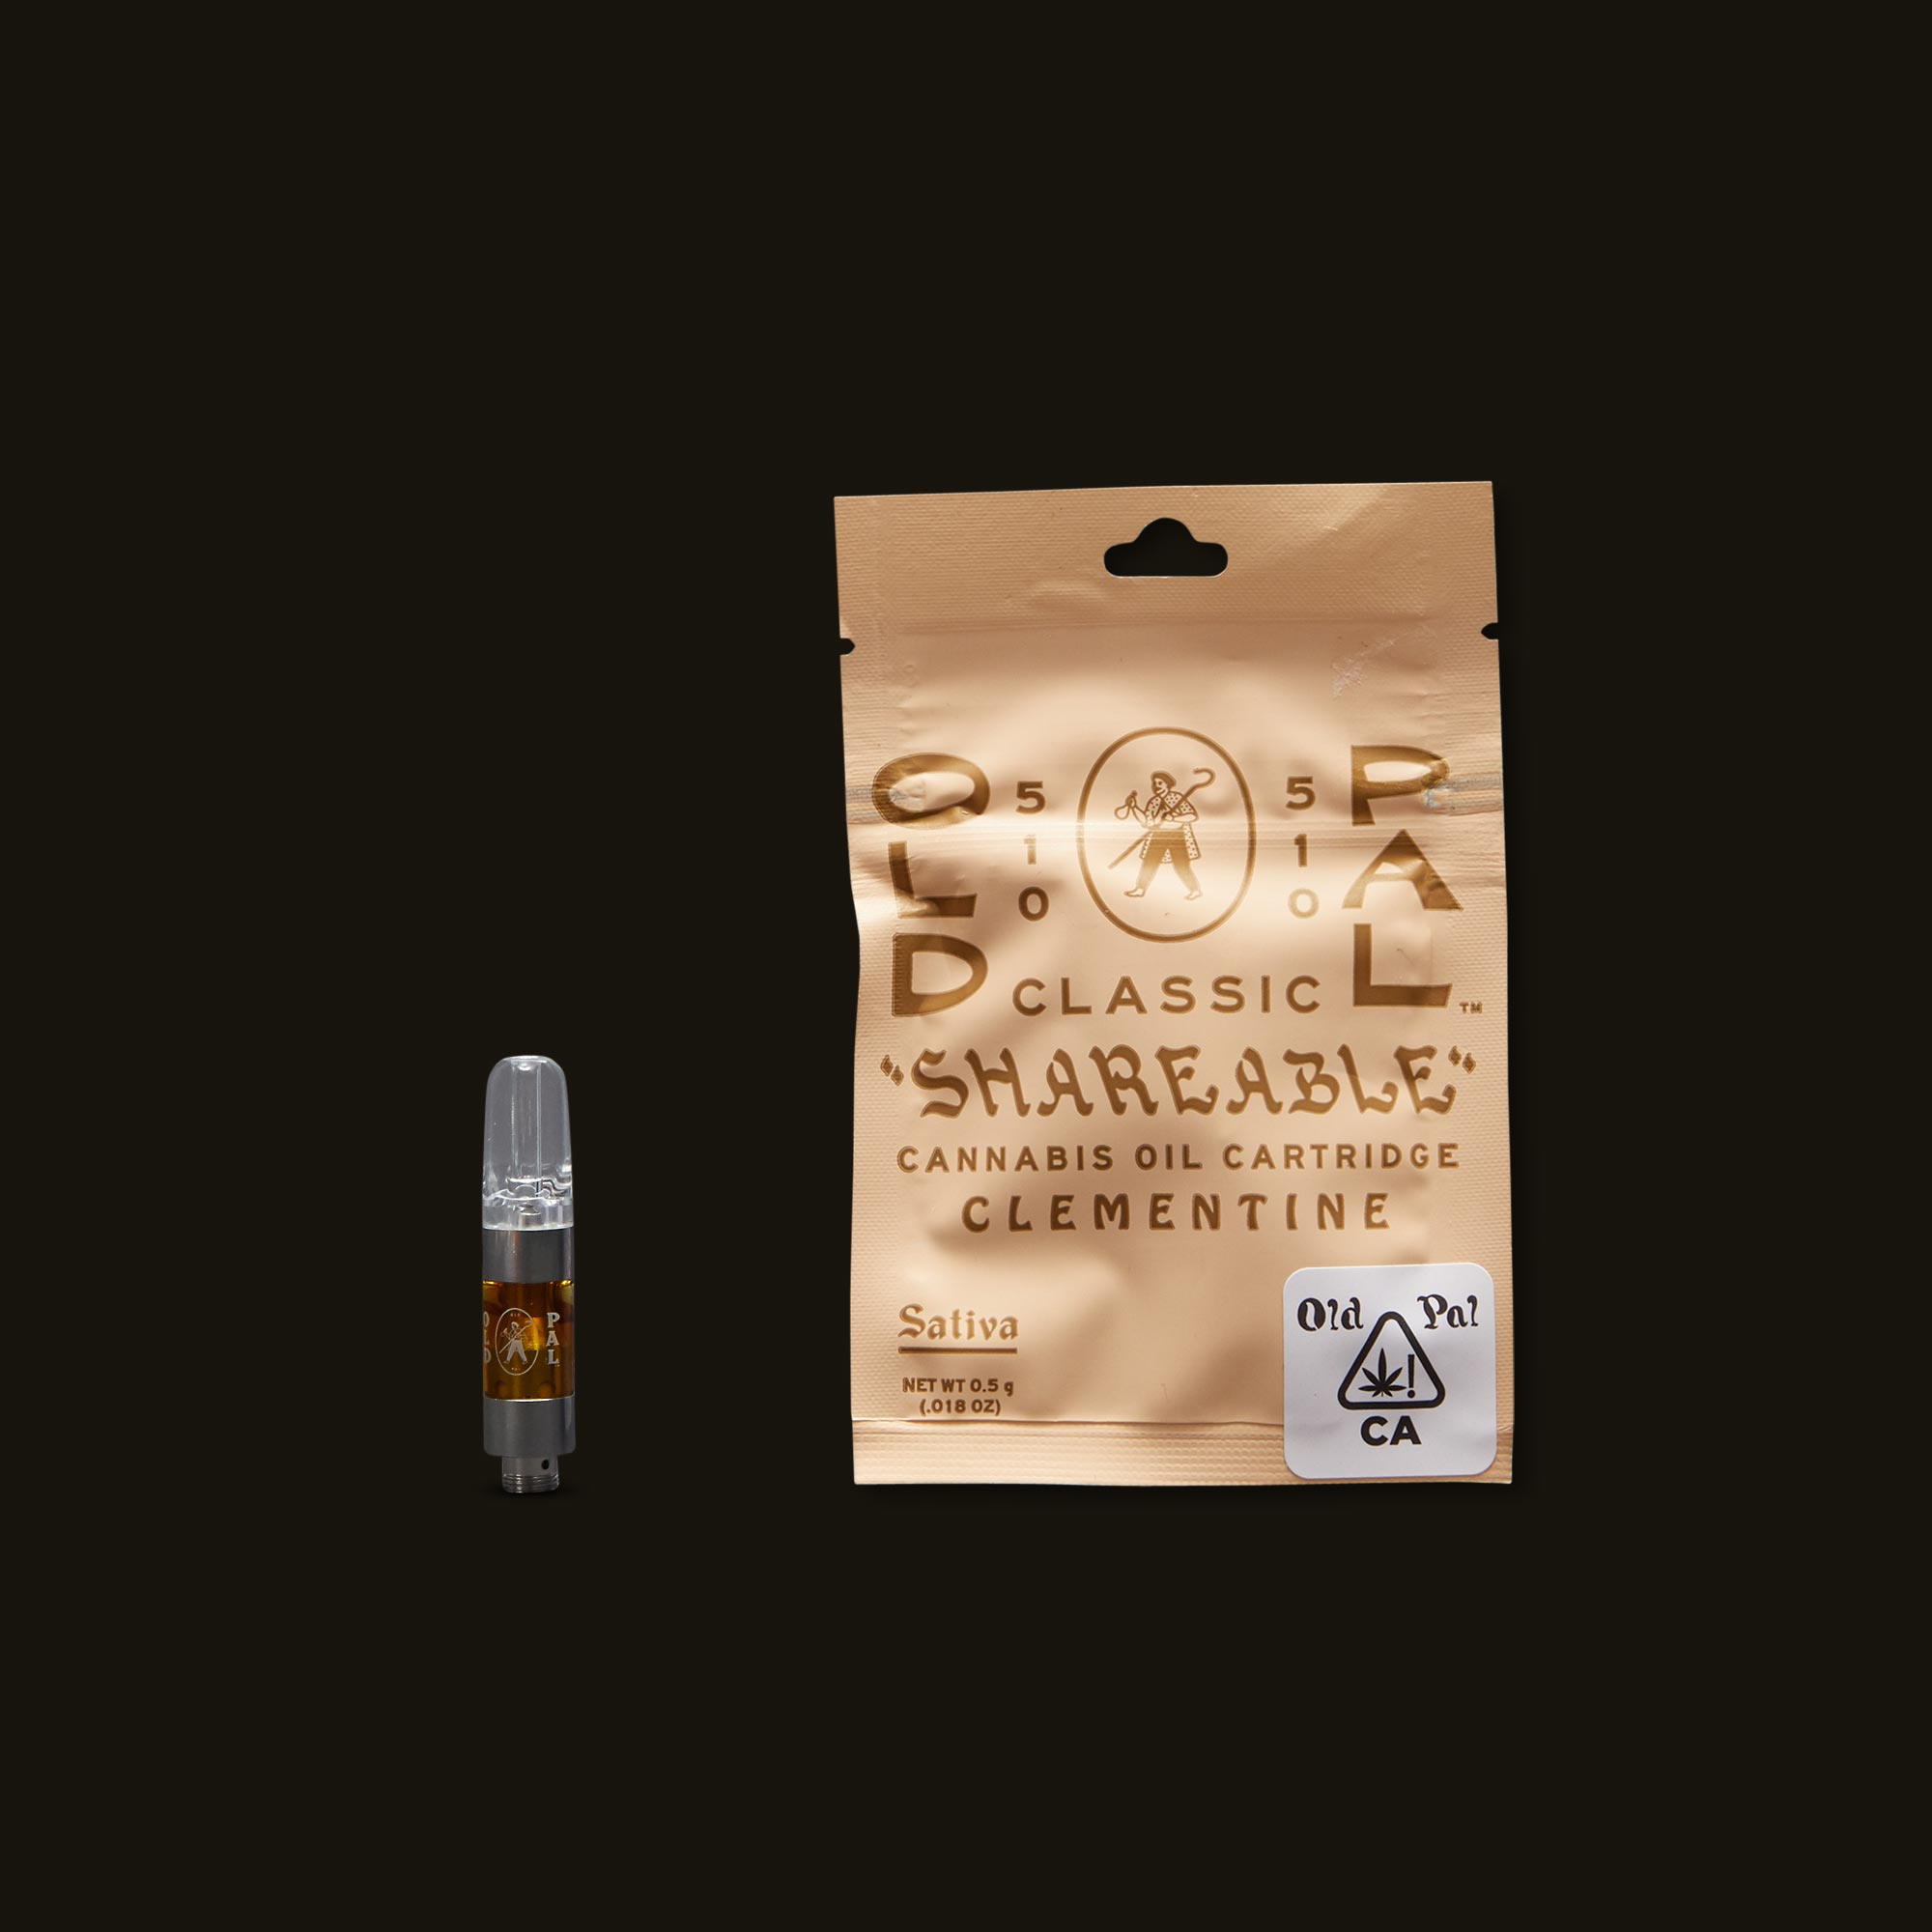 OLD PAL Clementine Cartridge - 0.5g